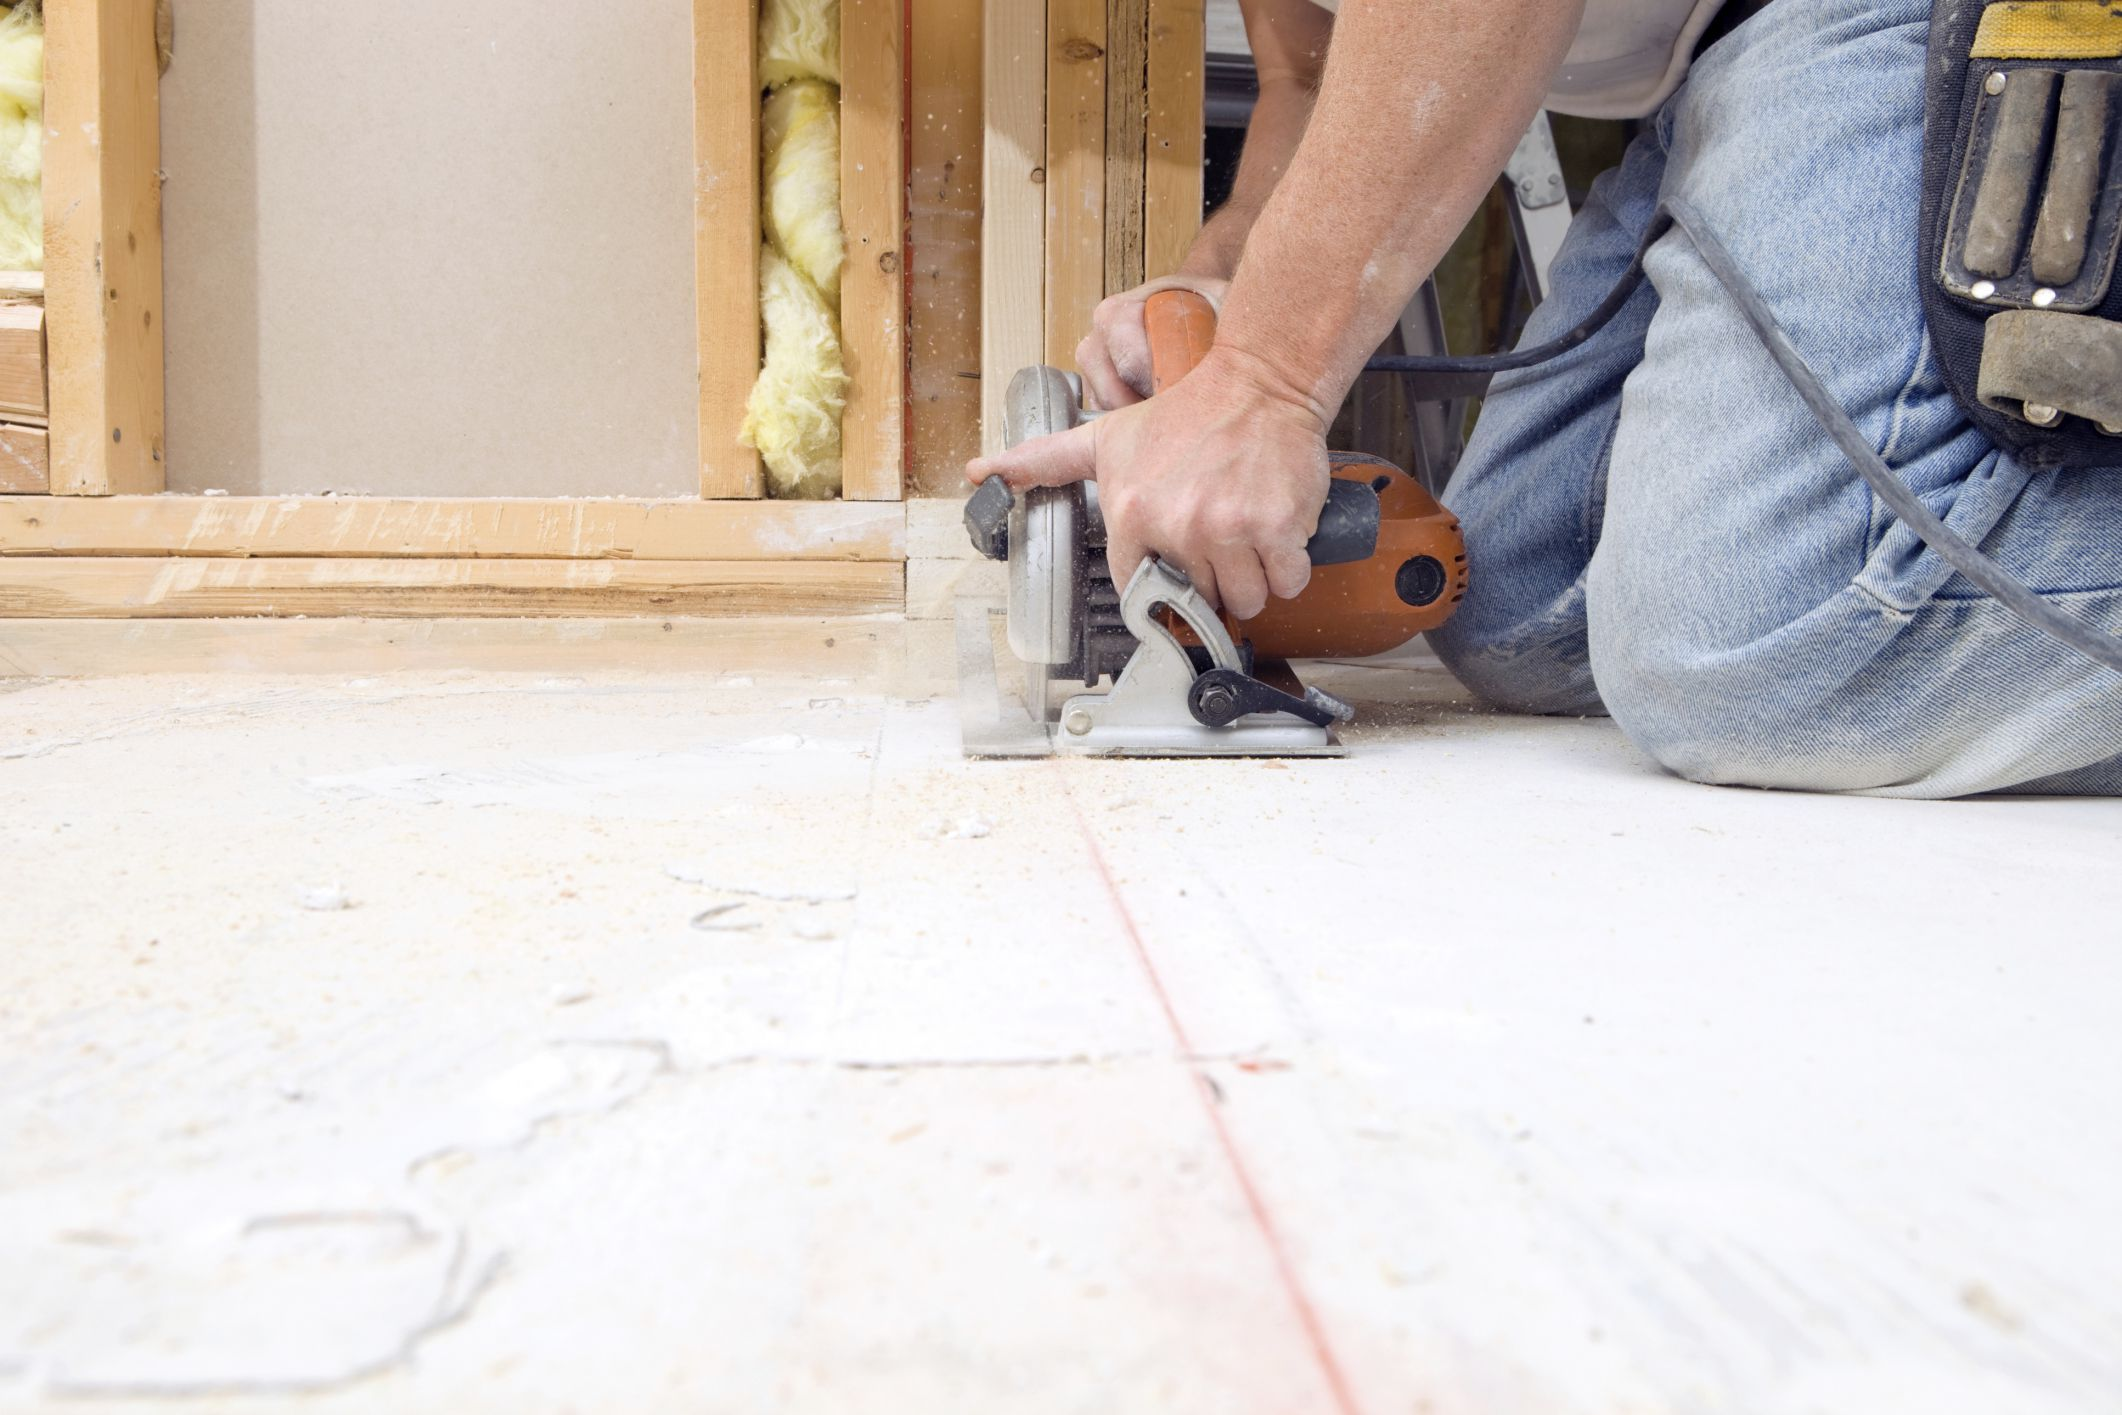 Tileboard basics and quick installation advice plywood underlayment basics to get you started dailygadgetfo Choice Image